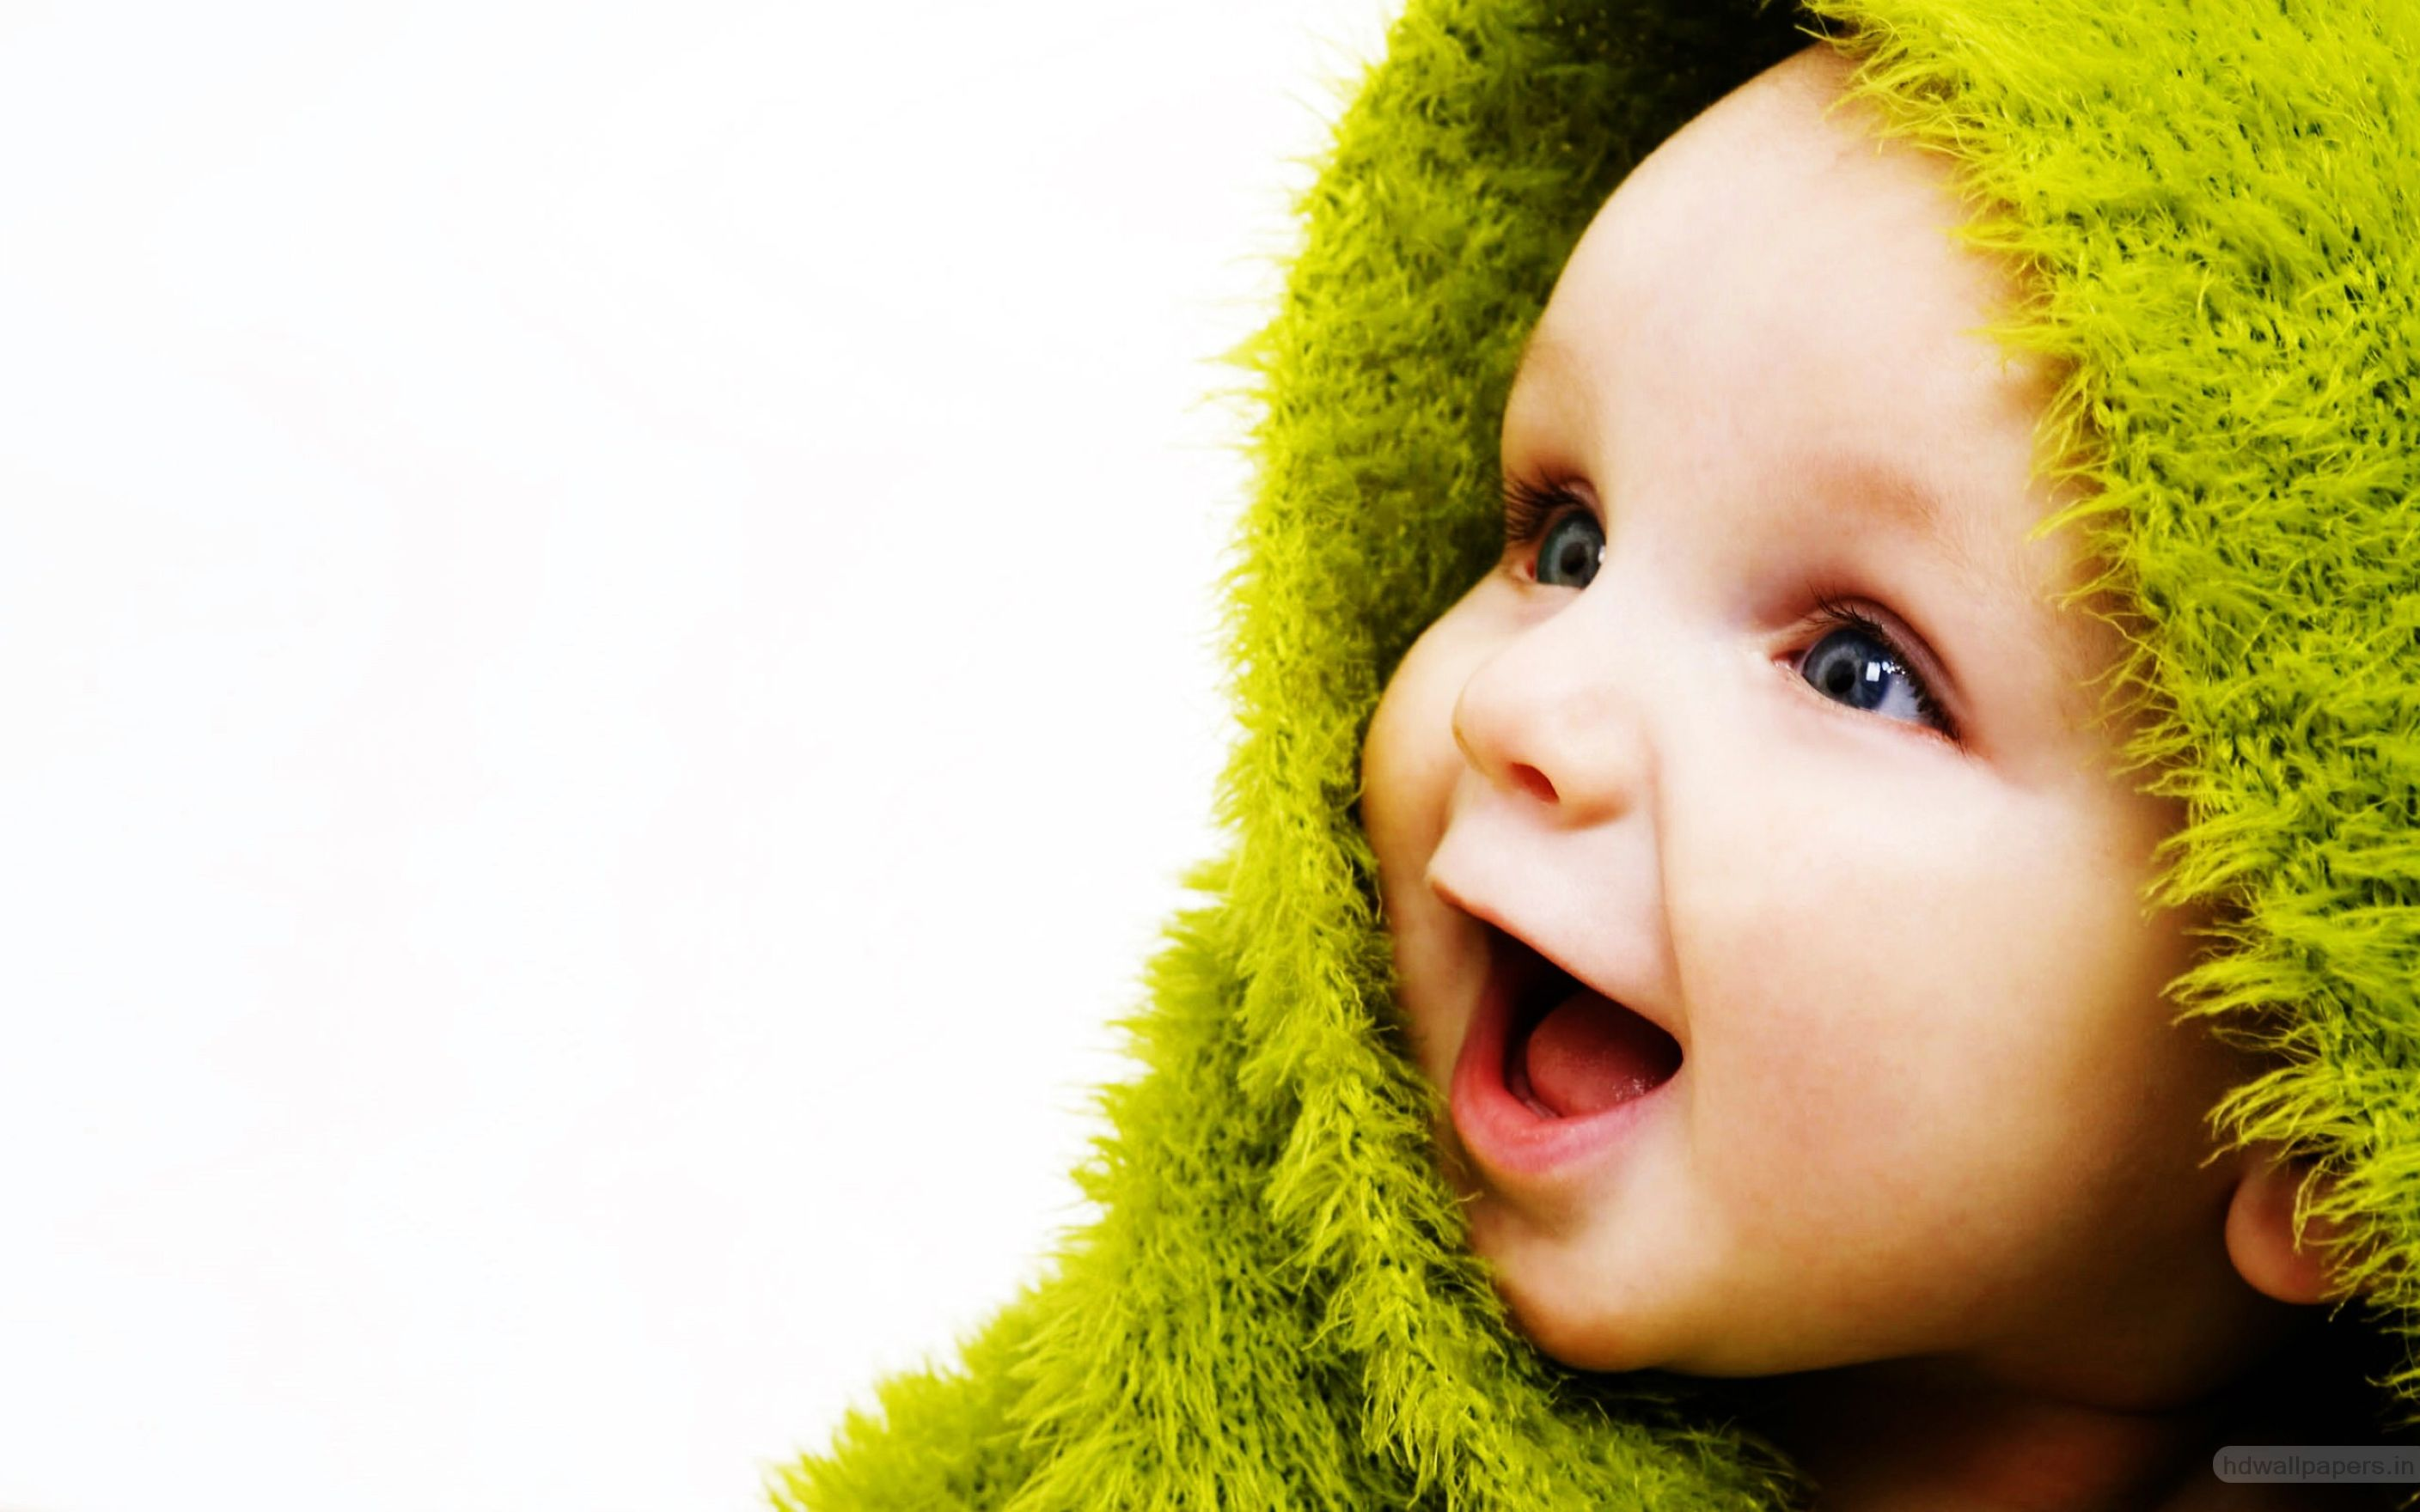 Little cute baby wide wallpaper desktop hd wallpaper download little cute baby wide wallpaper voltagebd Image collections